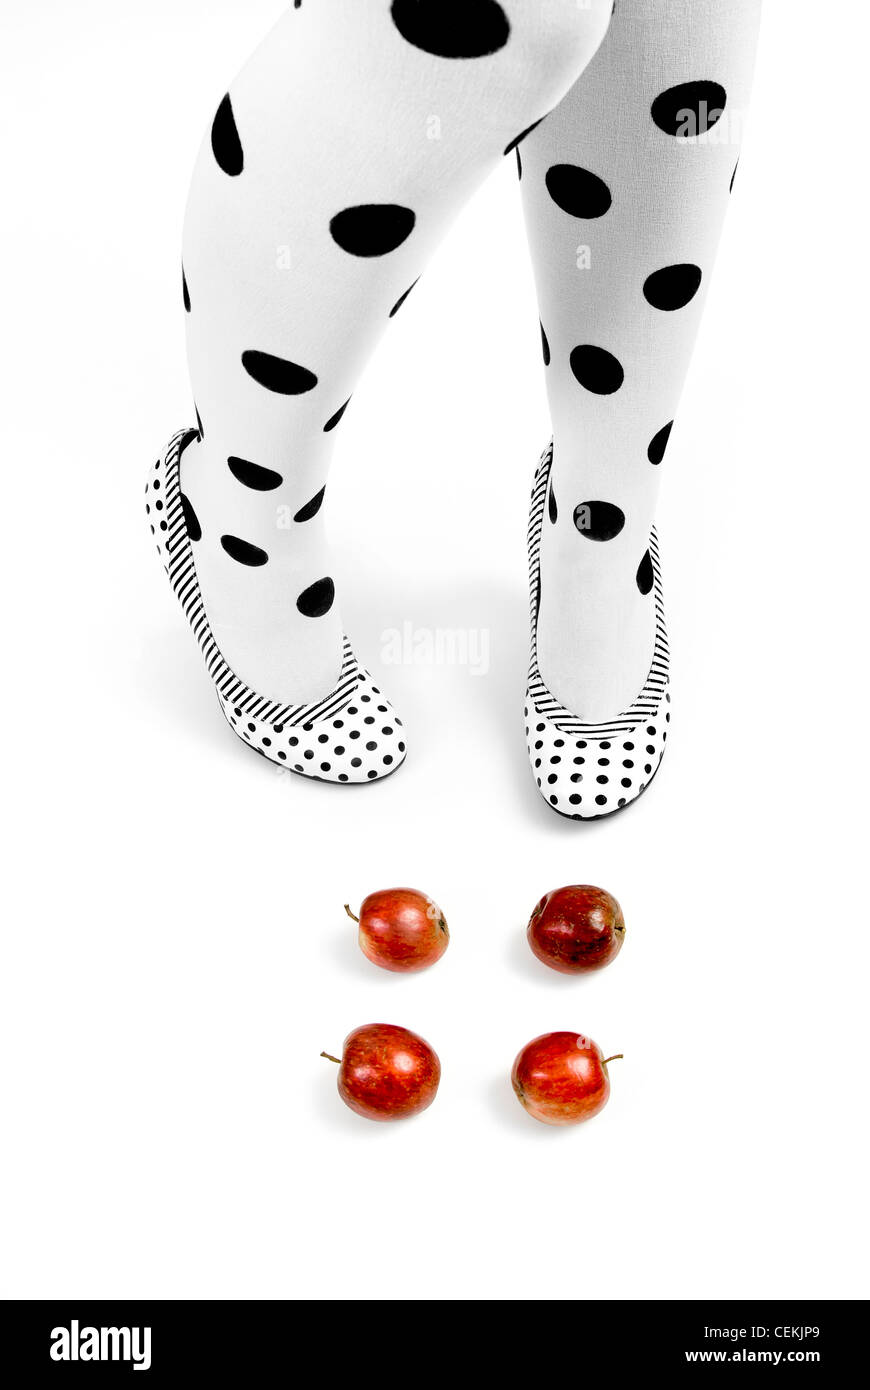 legs, dotted tights and shoes, and red apples. metaphorical: diet and shape - Stock Image